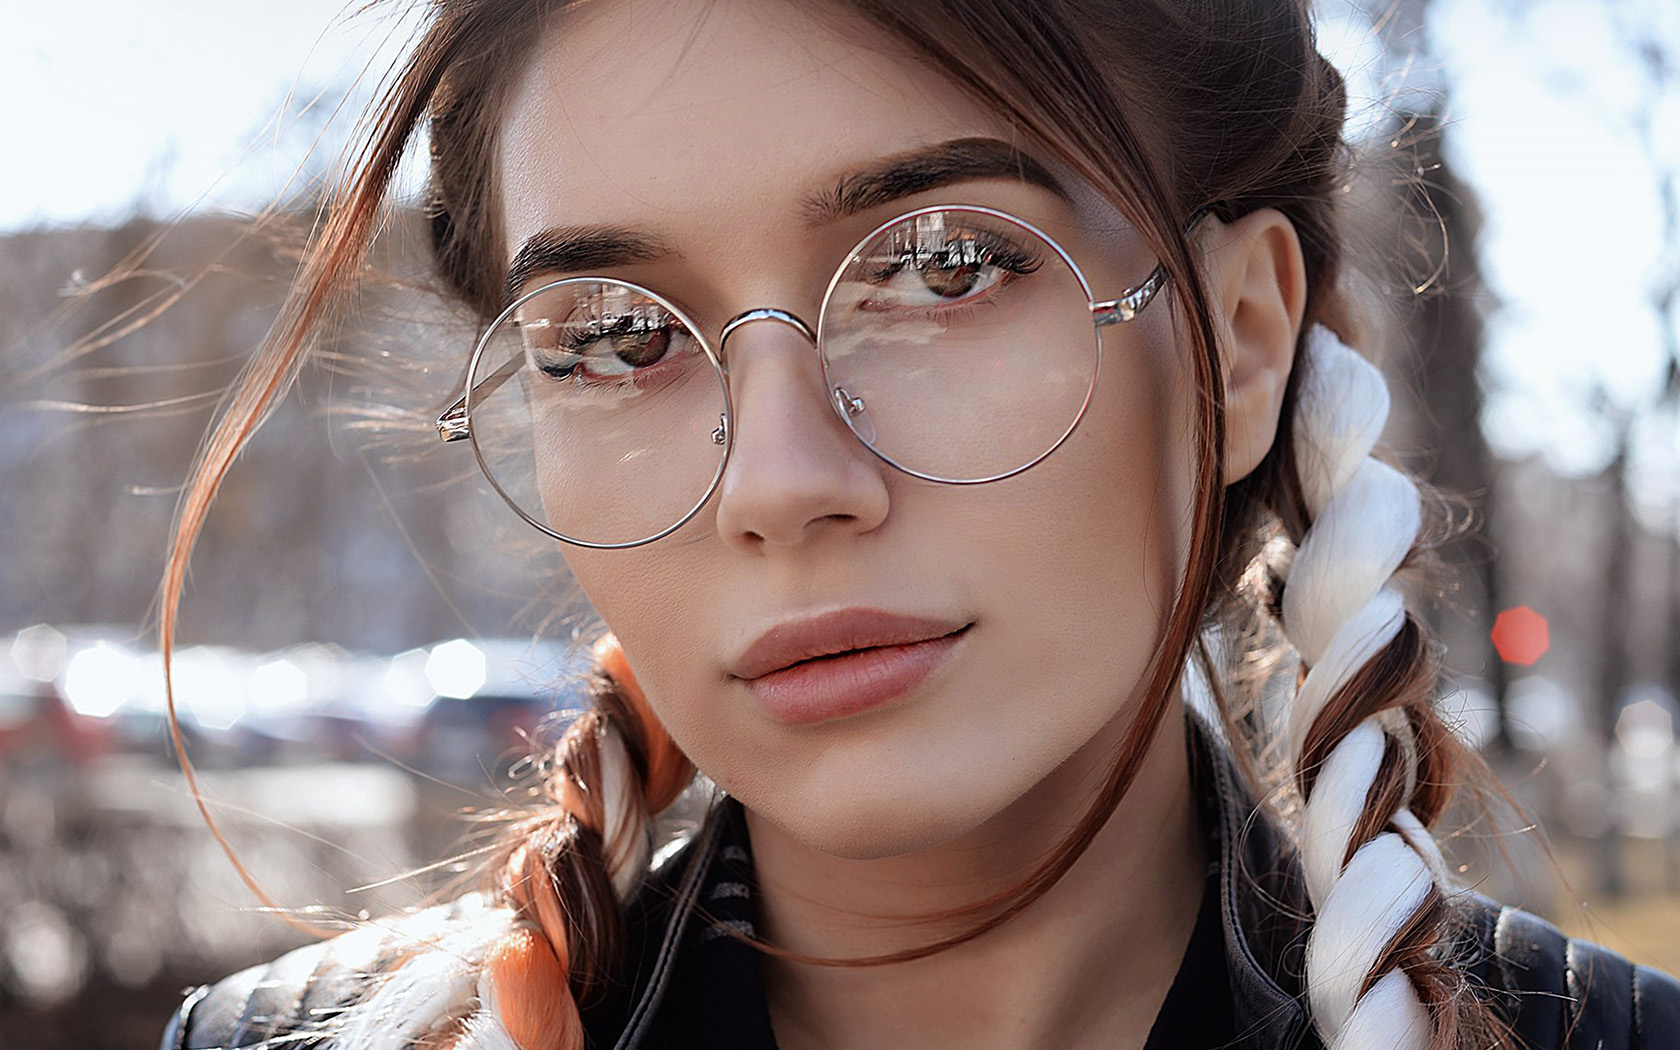 Simple Fall Hd Wallpaper Hp49 Dua Lipa Girl Glasses Wallpaper